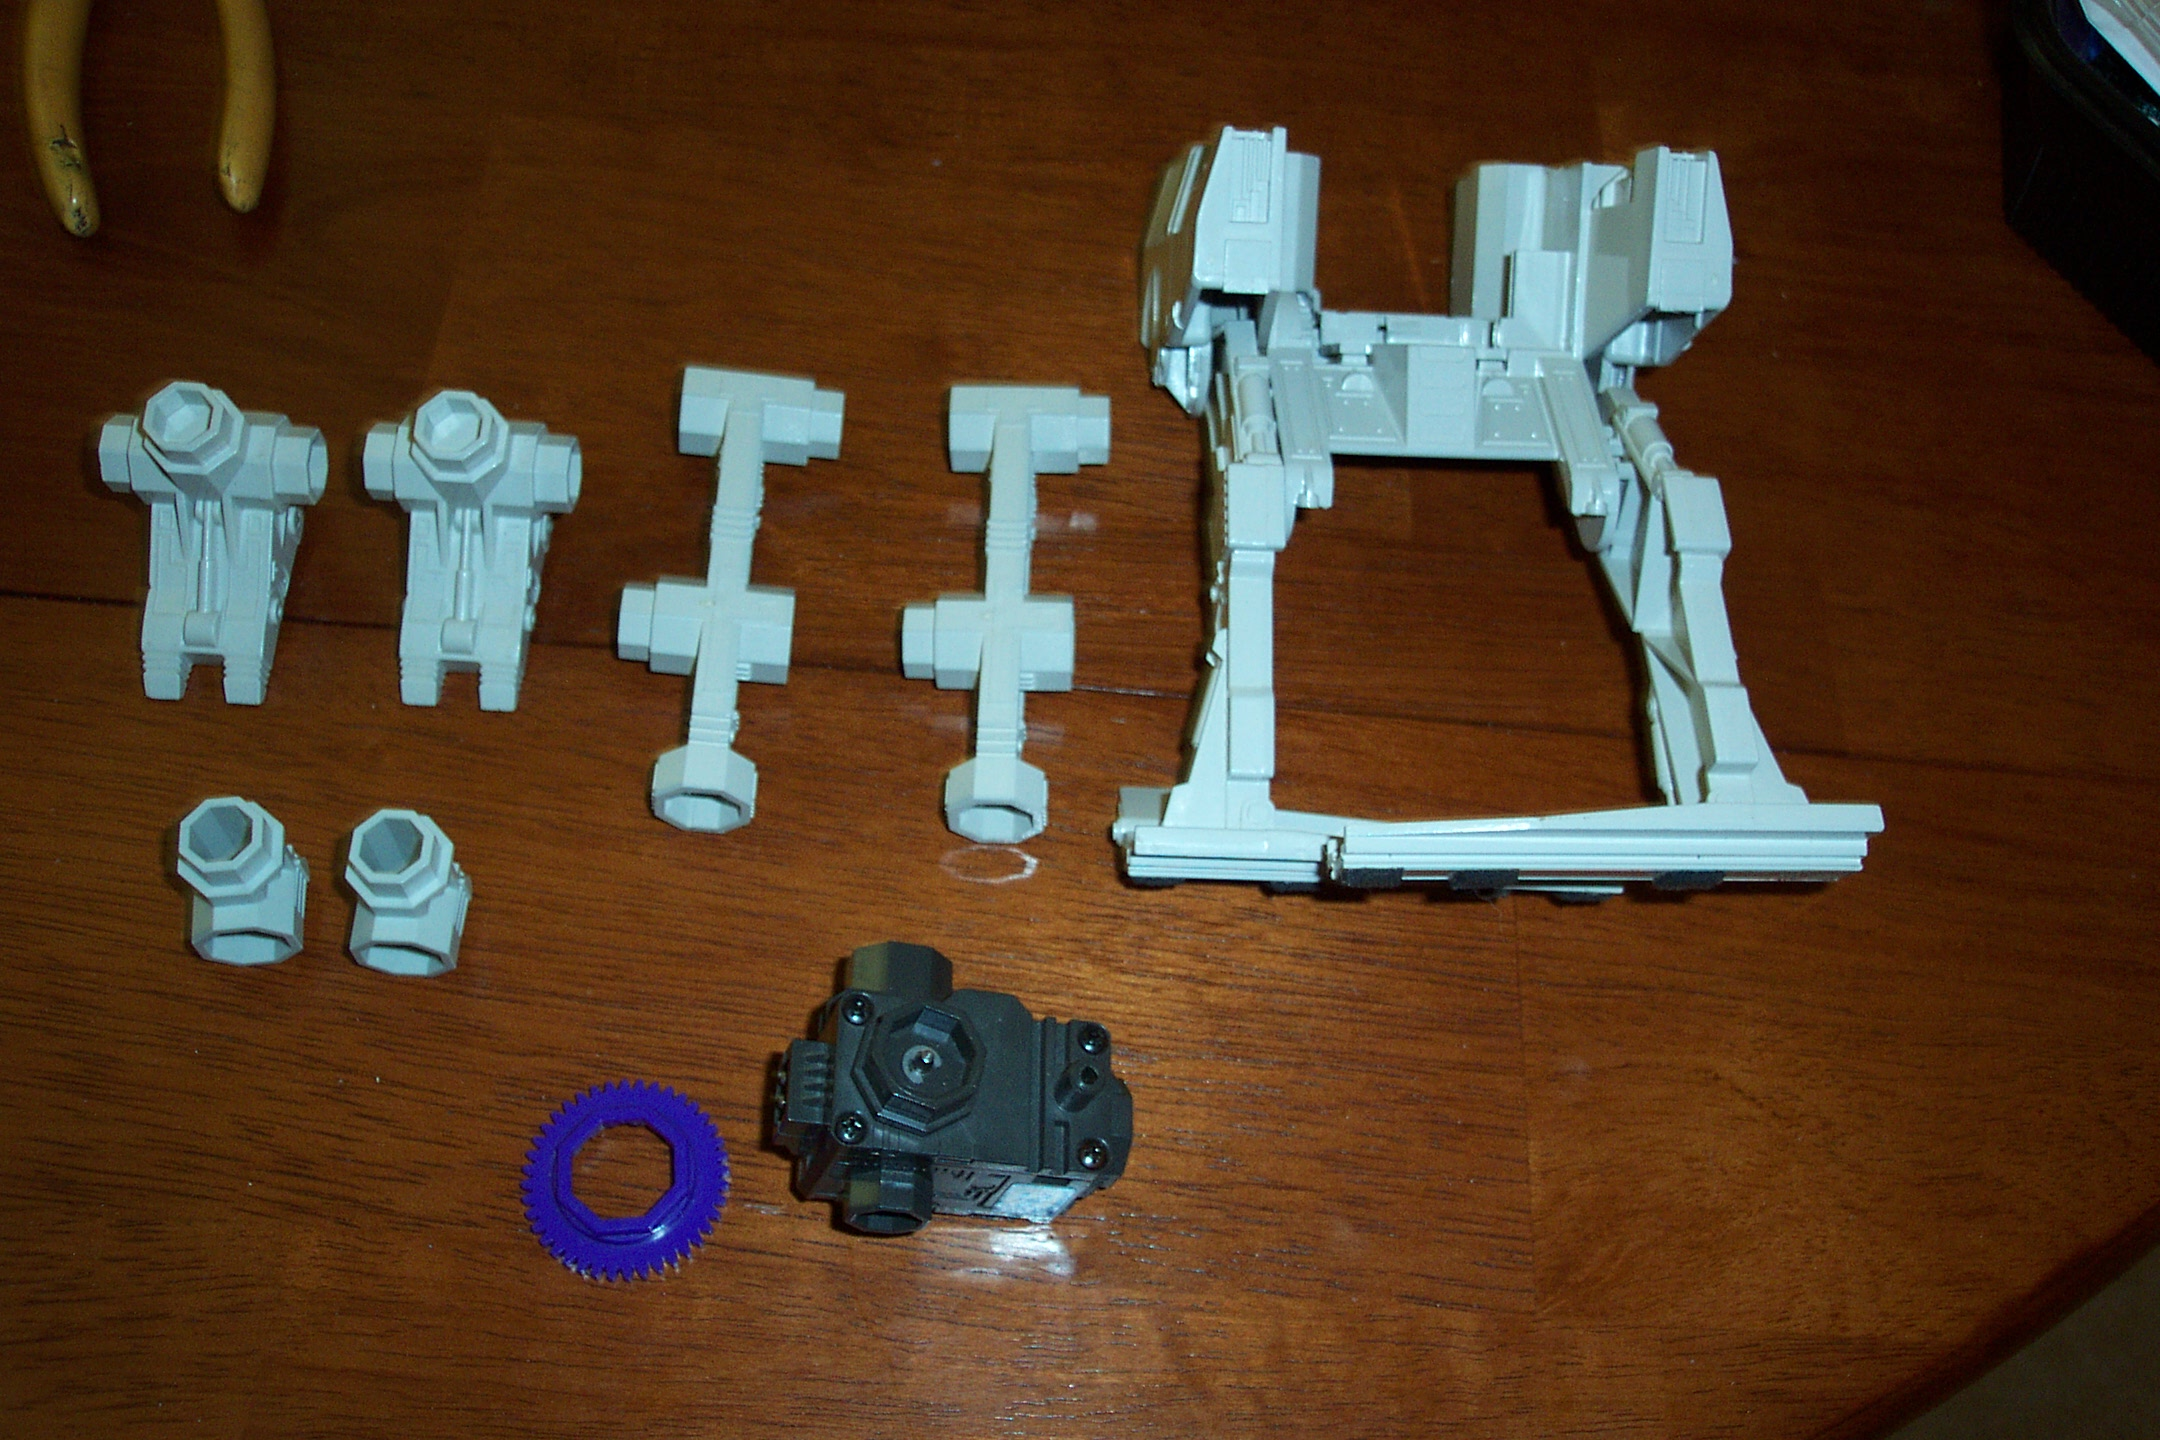 Picture of Building the Mini-Walking Bot. Here Are the Parts for Building the Bot